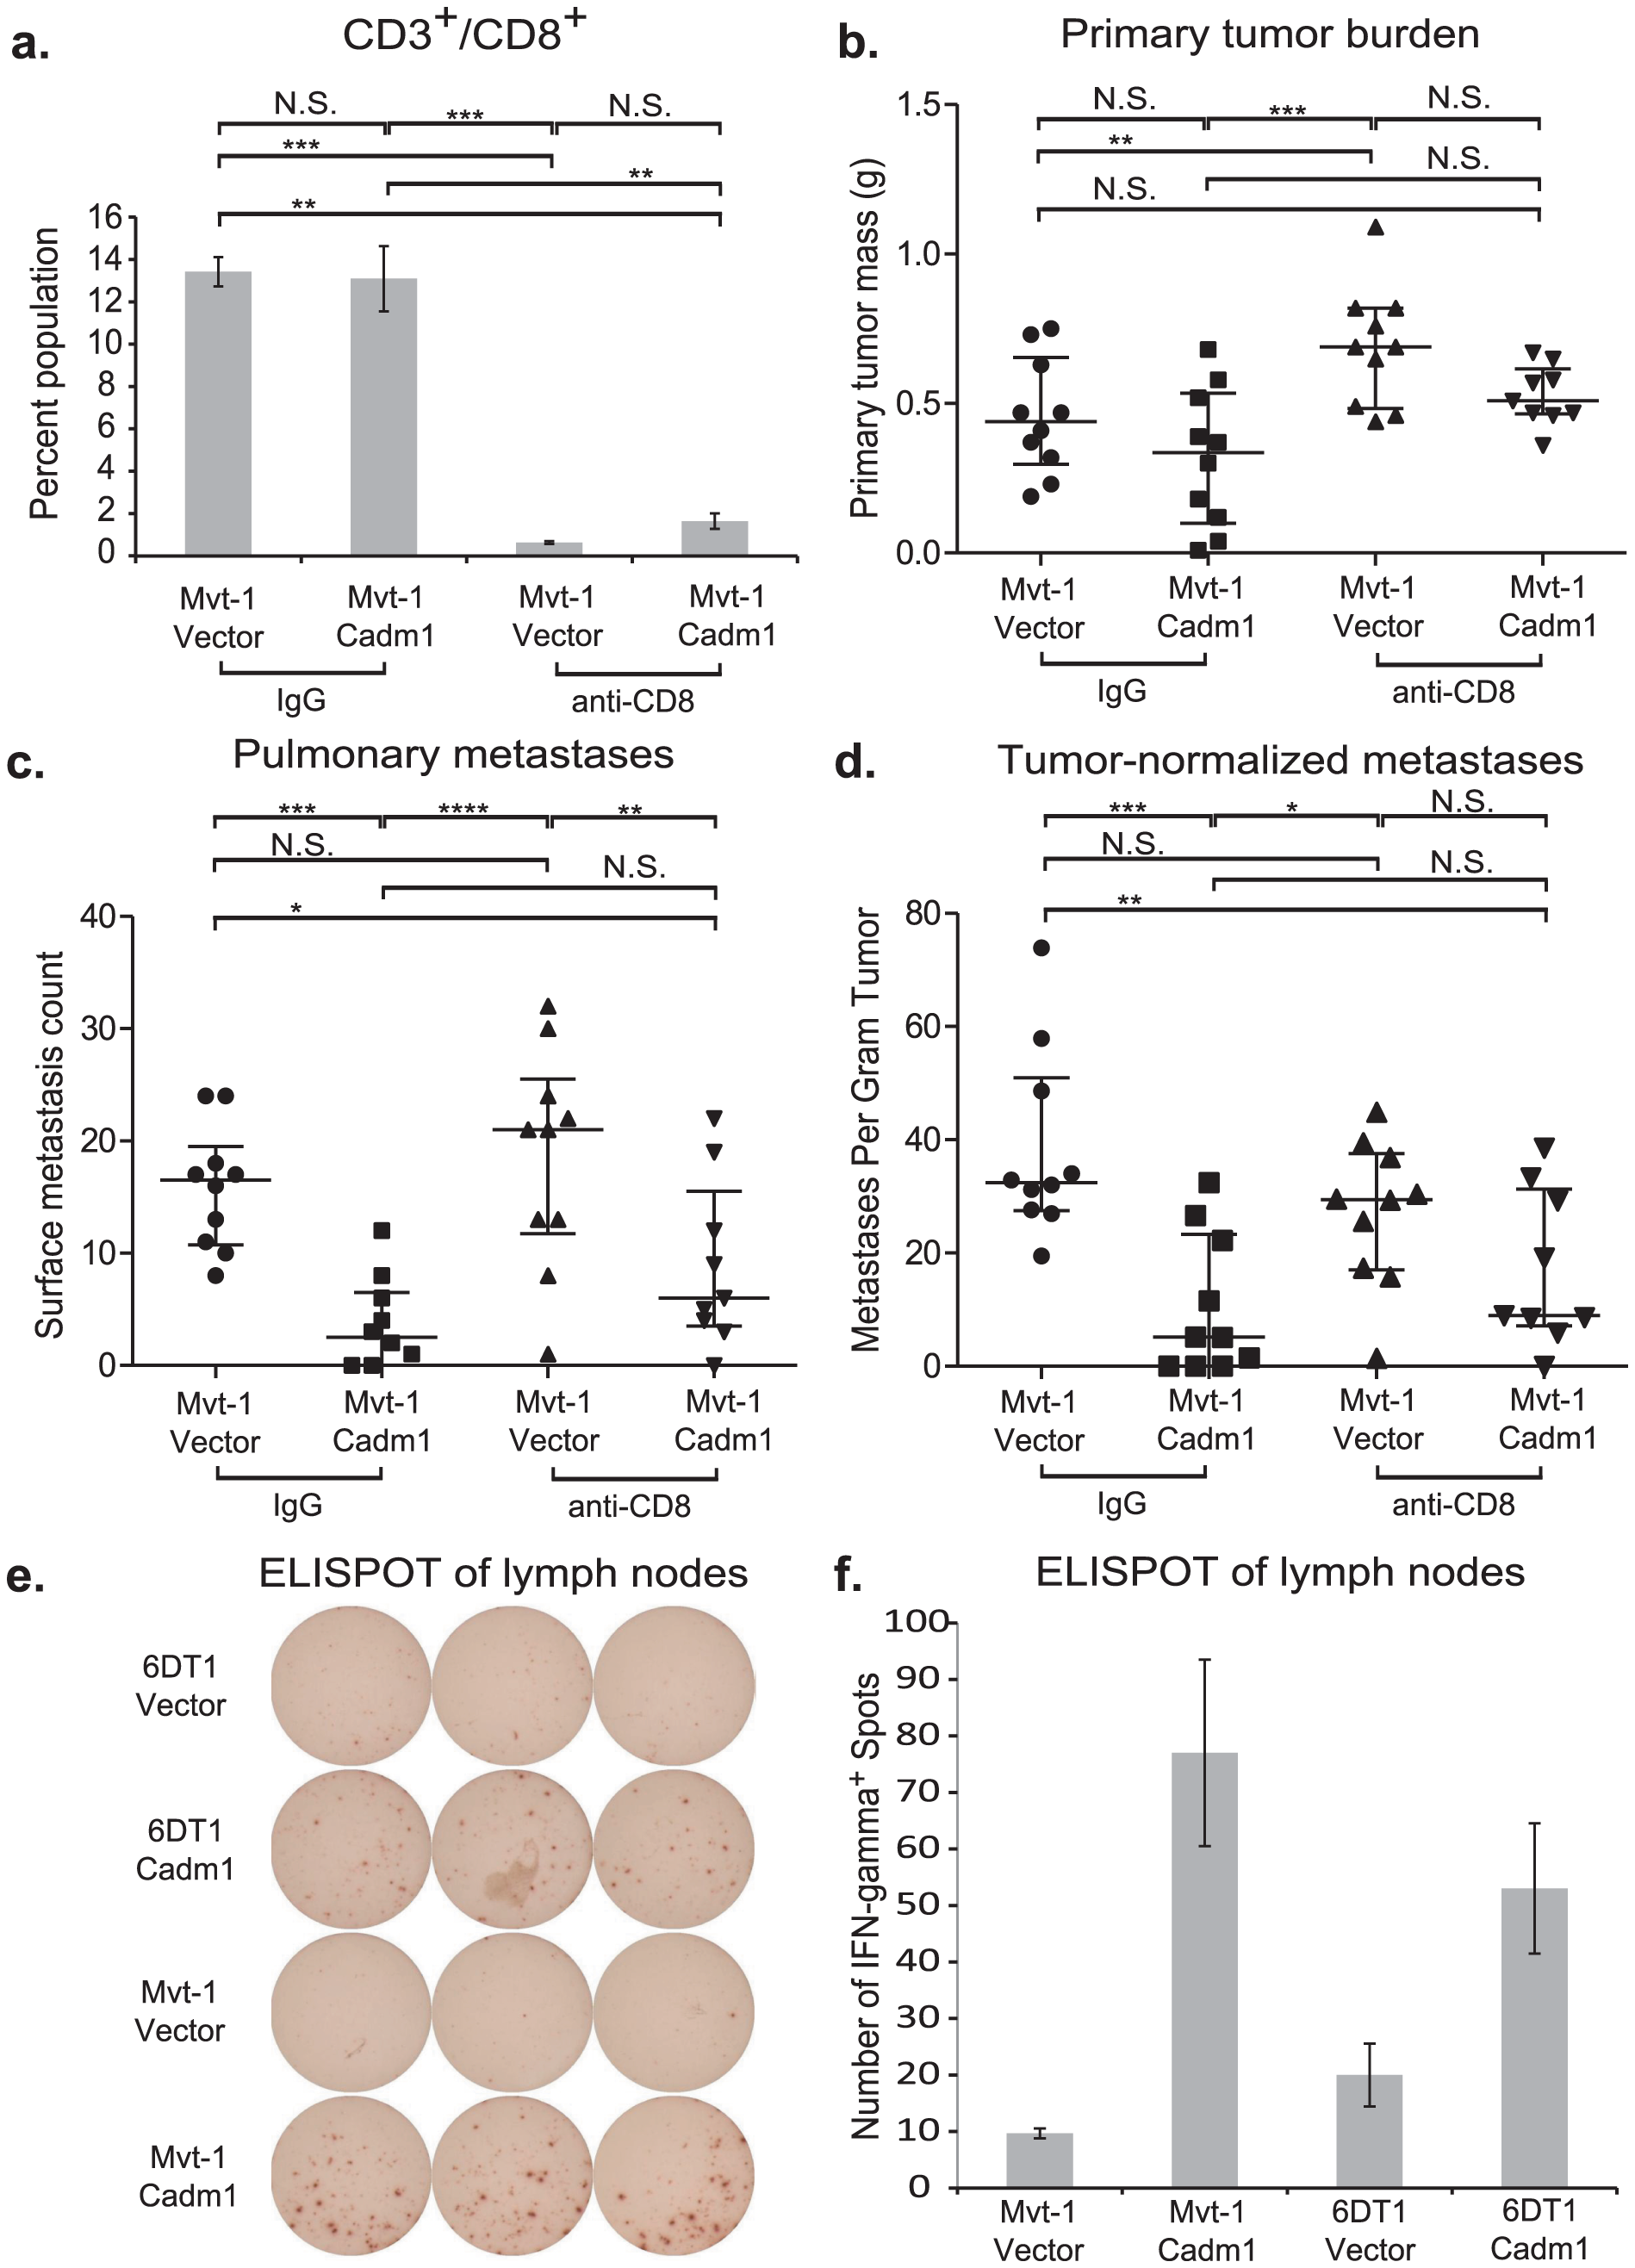 The effect of <i>Cadm1</i> expression on tumor and metastasis in CD8<sup>+</sup> T cell depleted mice.